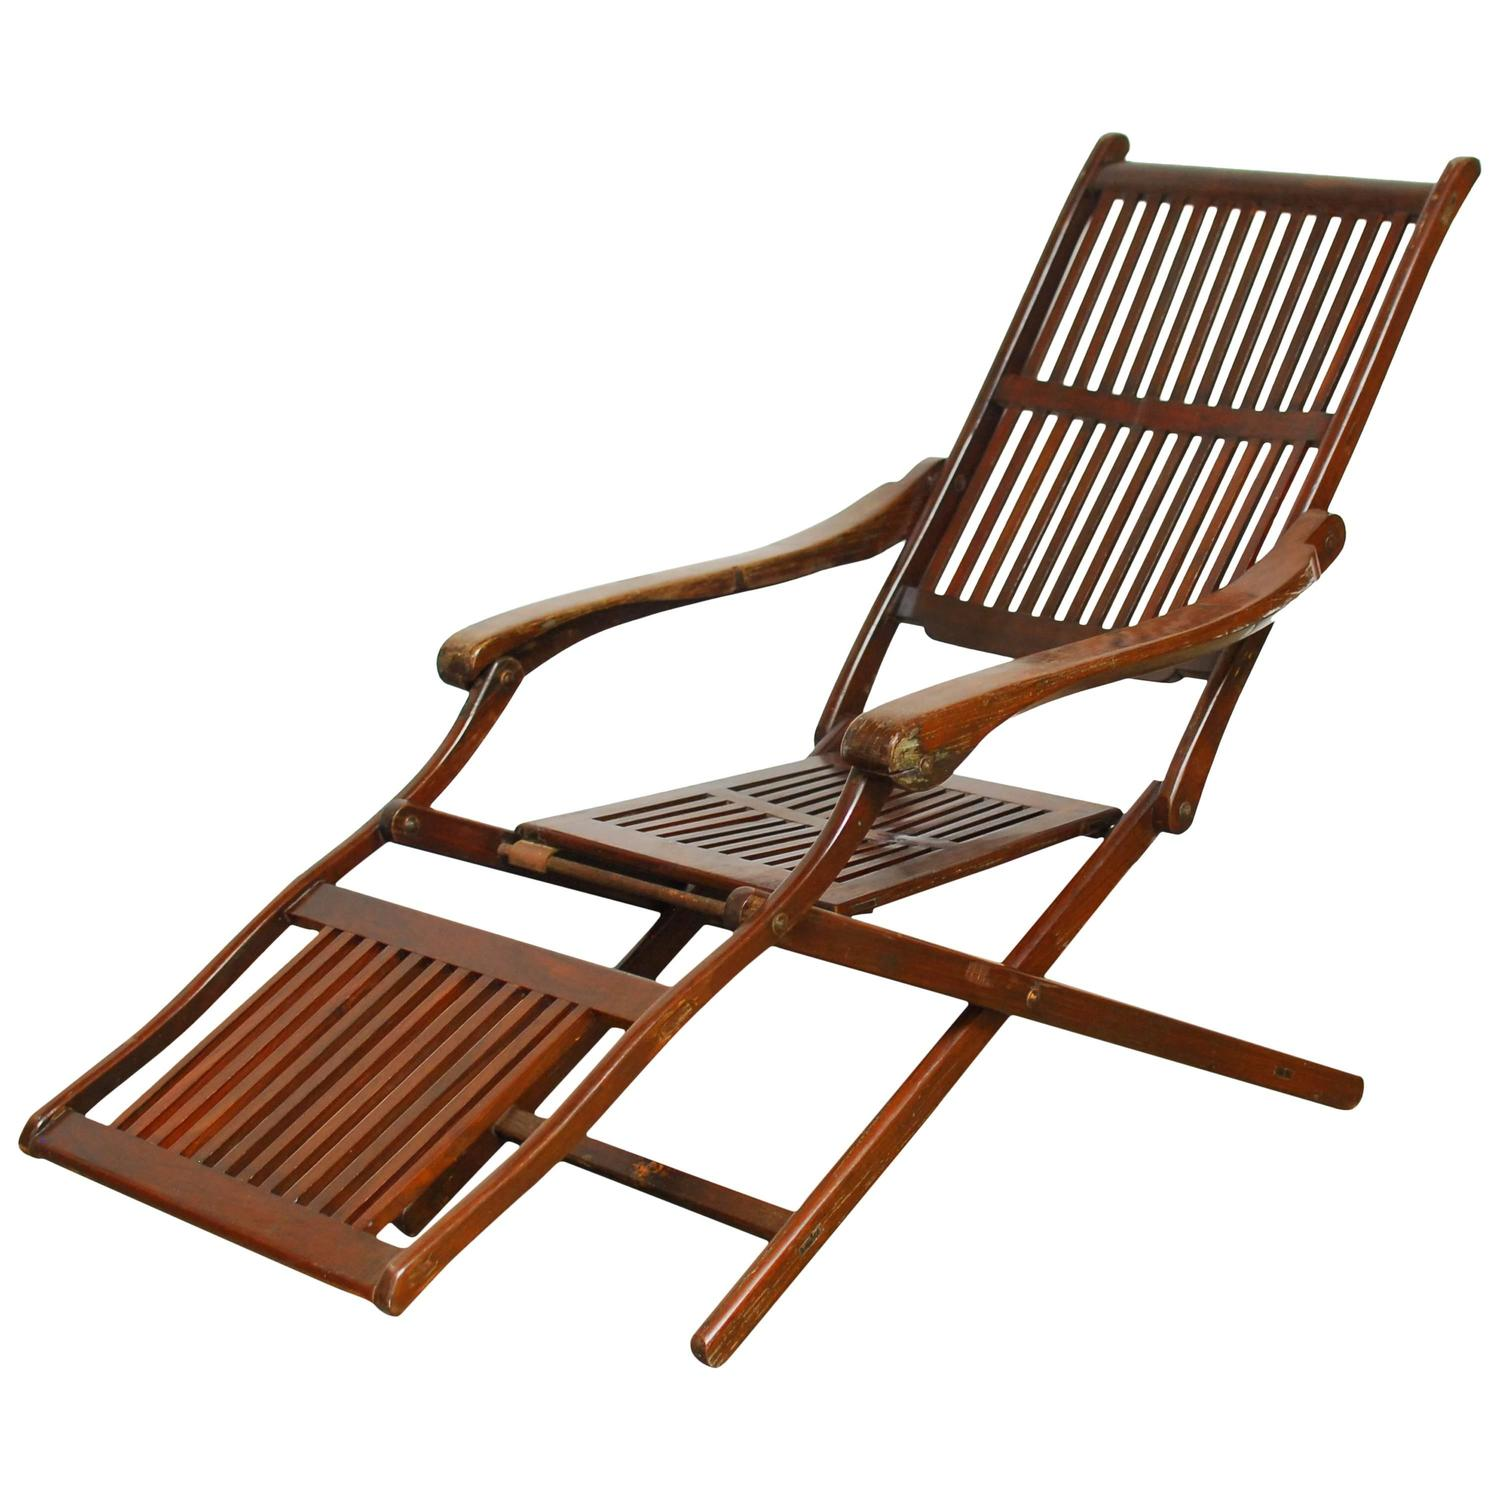 Antique Ocean Steamer Deck Chair at 1stdibs